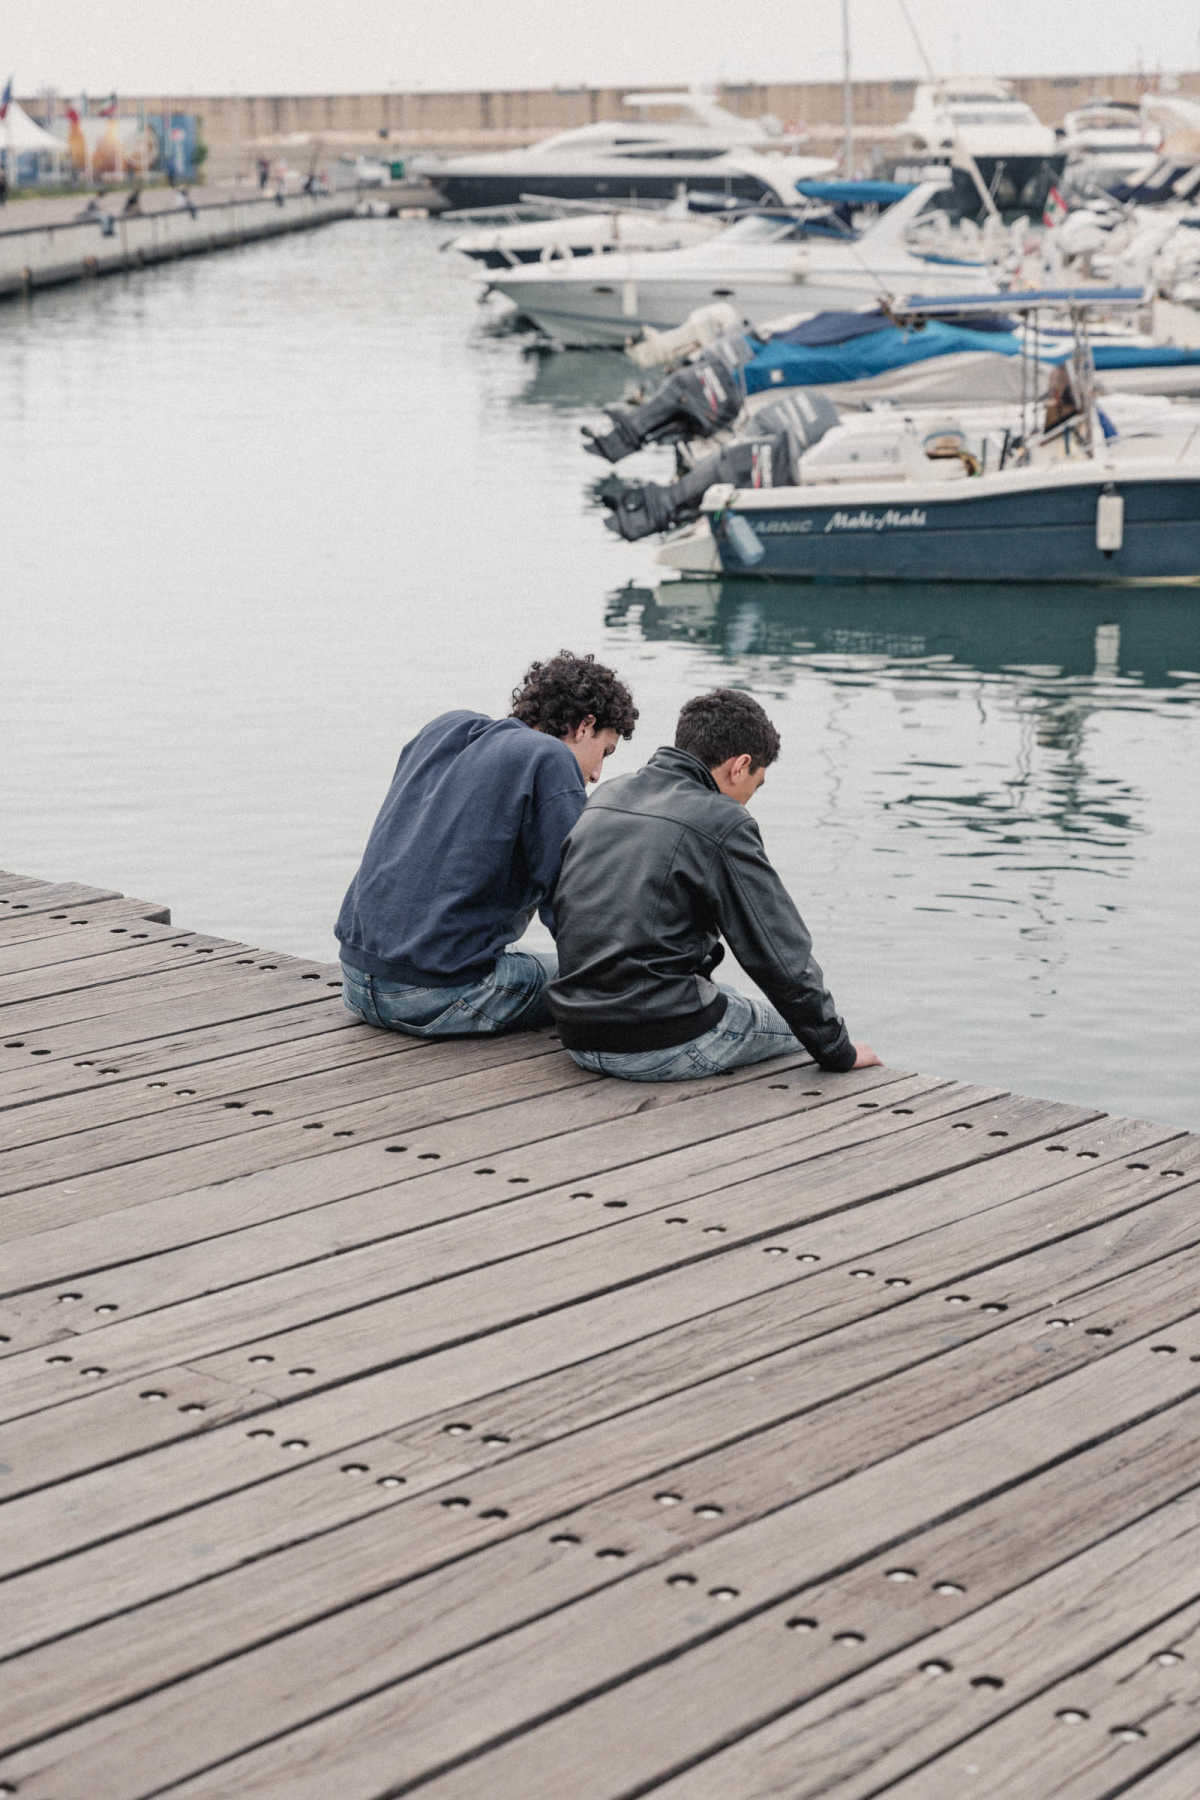 Two young boys sitting at a dock, looking into the water